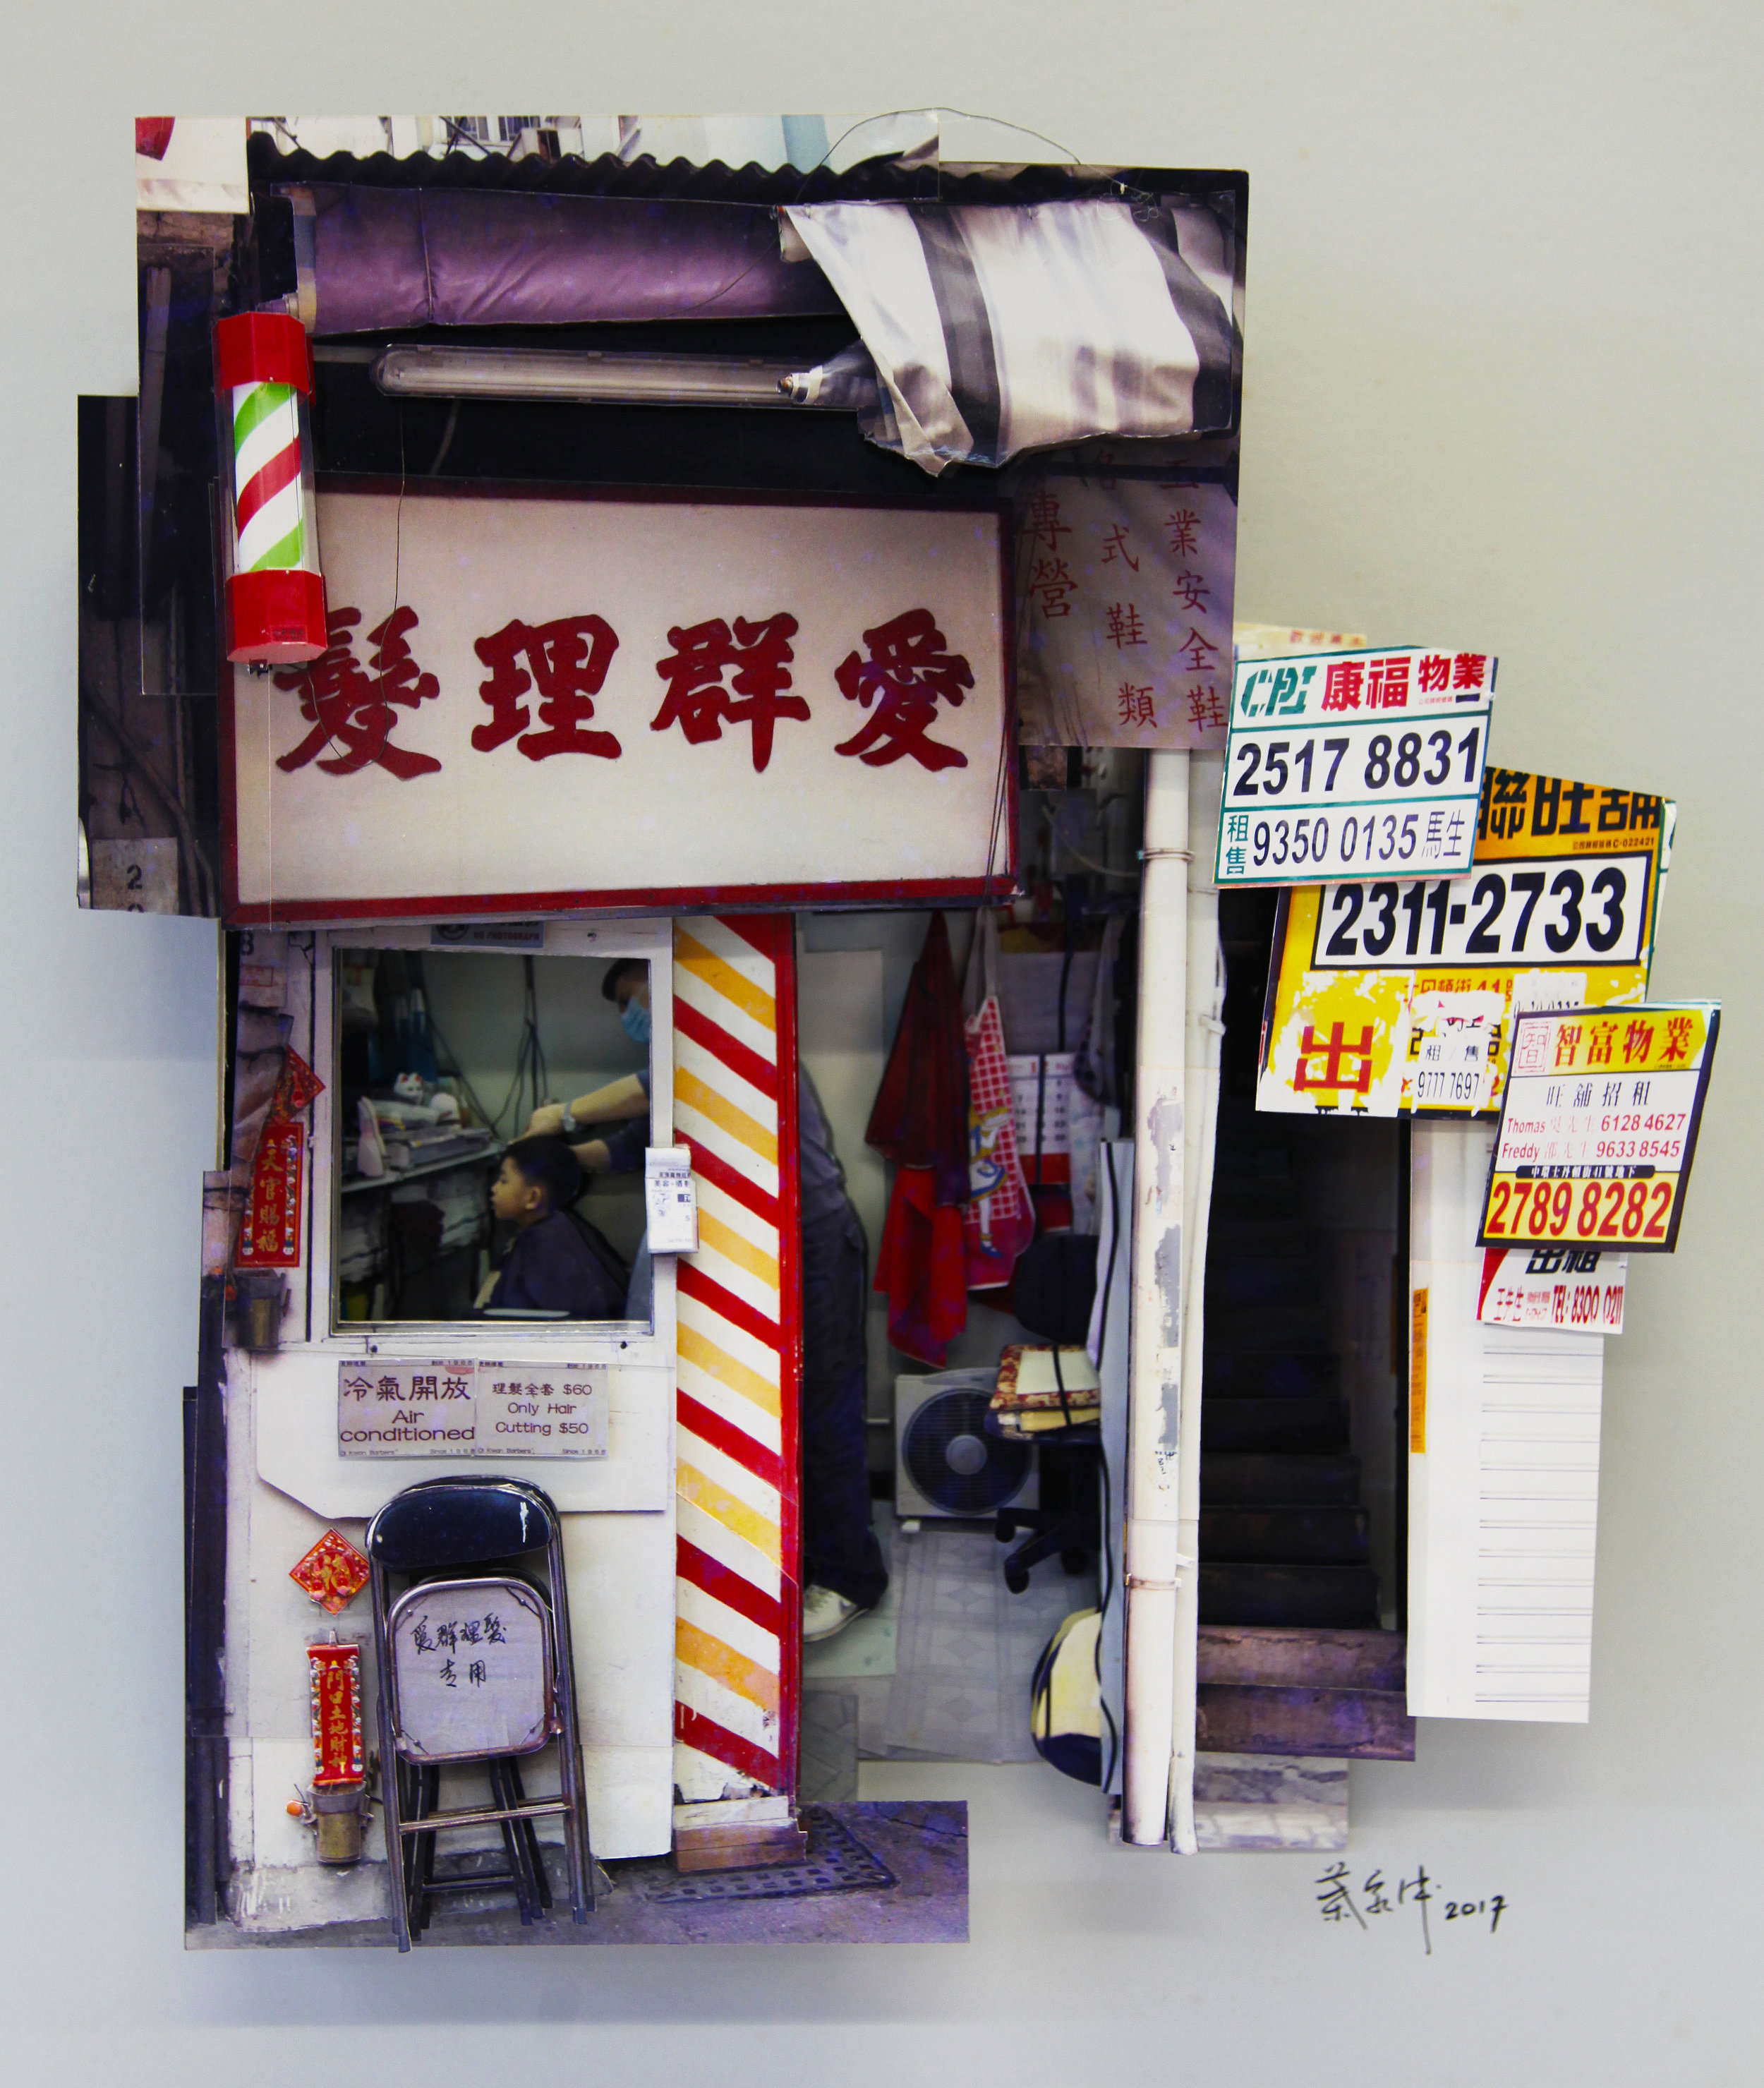 葉家偉 Alexis Ip '愛群理髮 Oi Kwan Barber Shop in Wan Chai' (Hong Kong, 2016) Courtesy of Blue Lotus Gallery.jpg